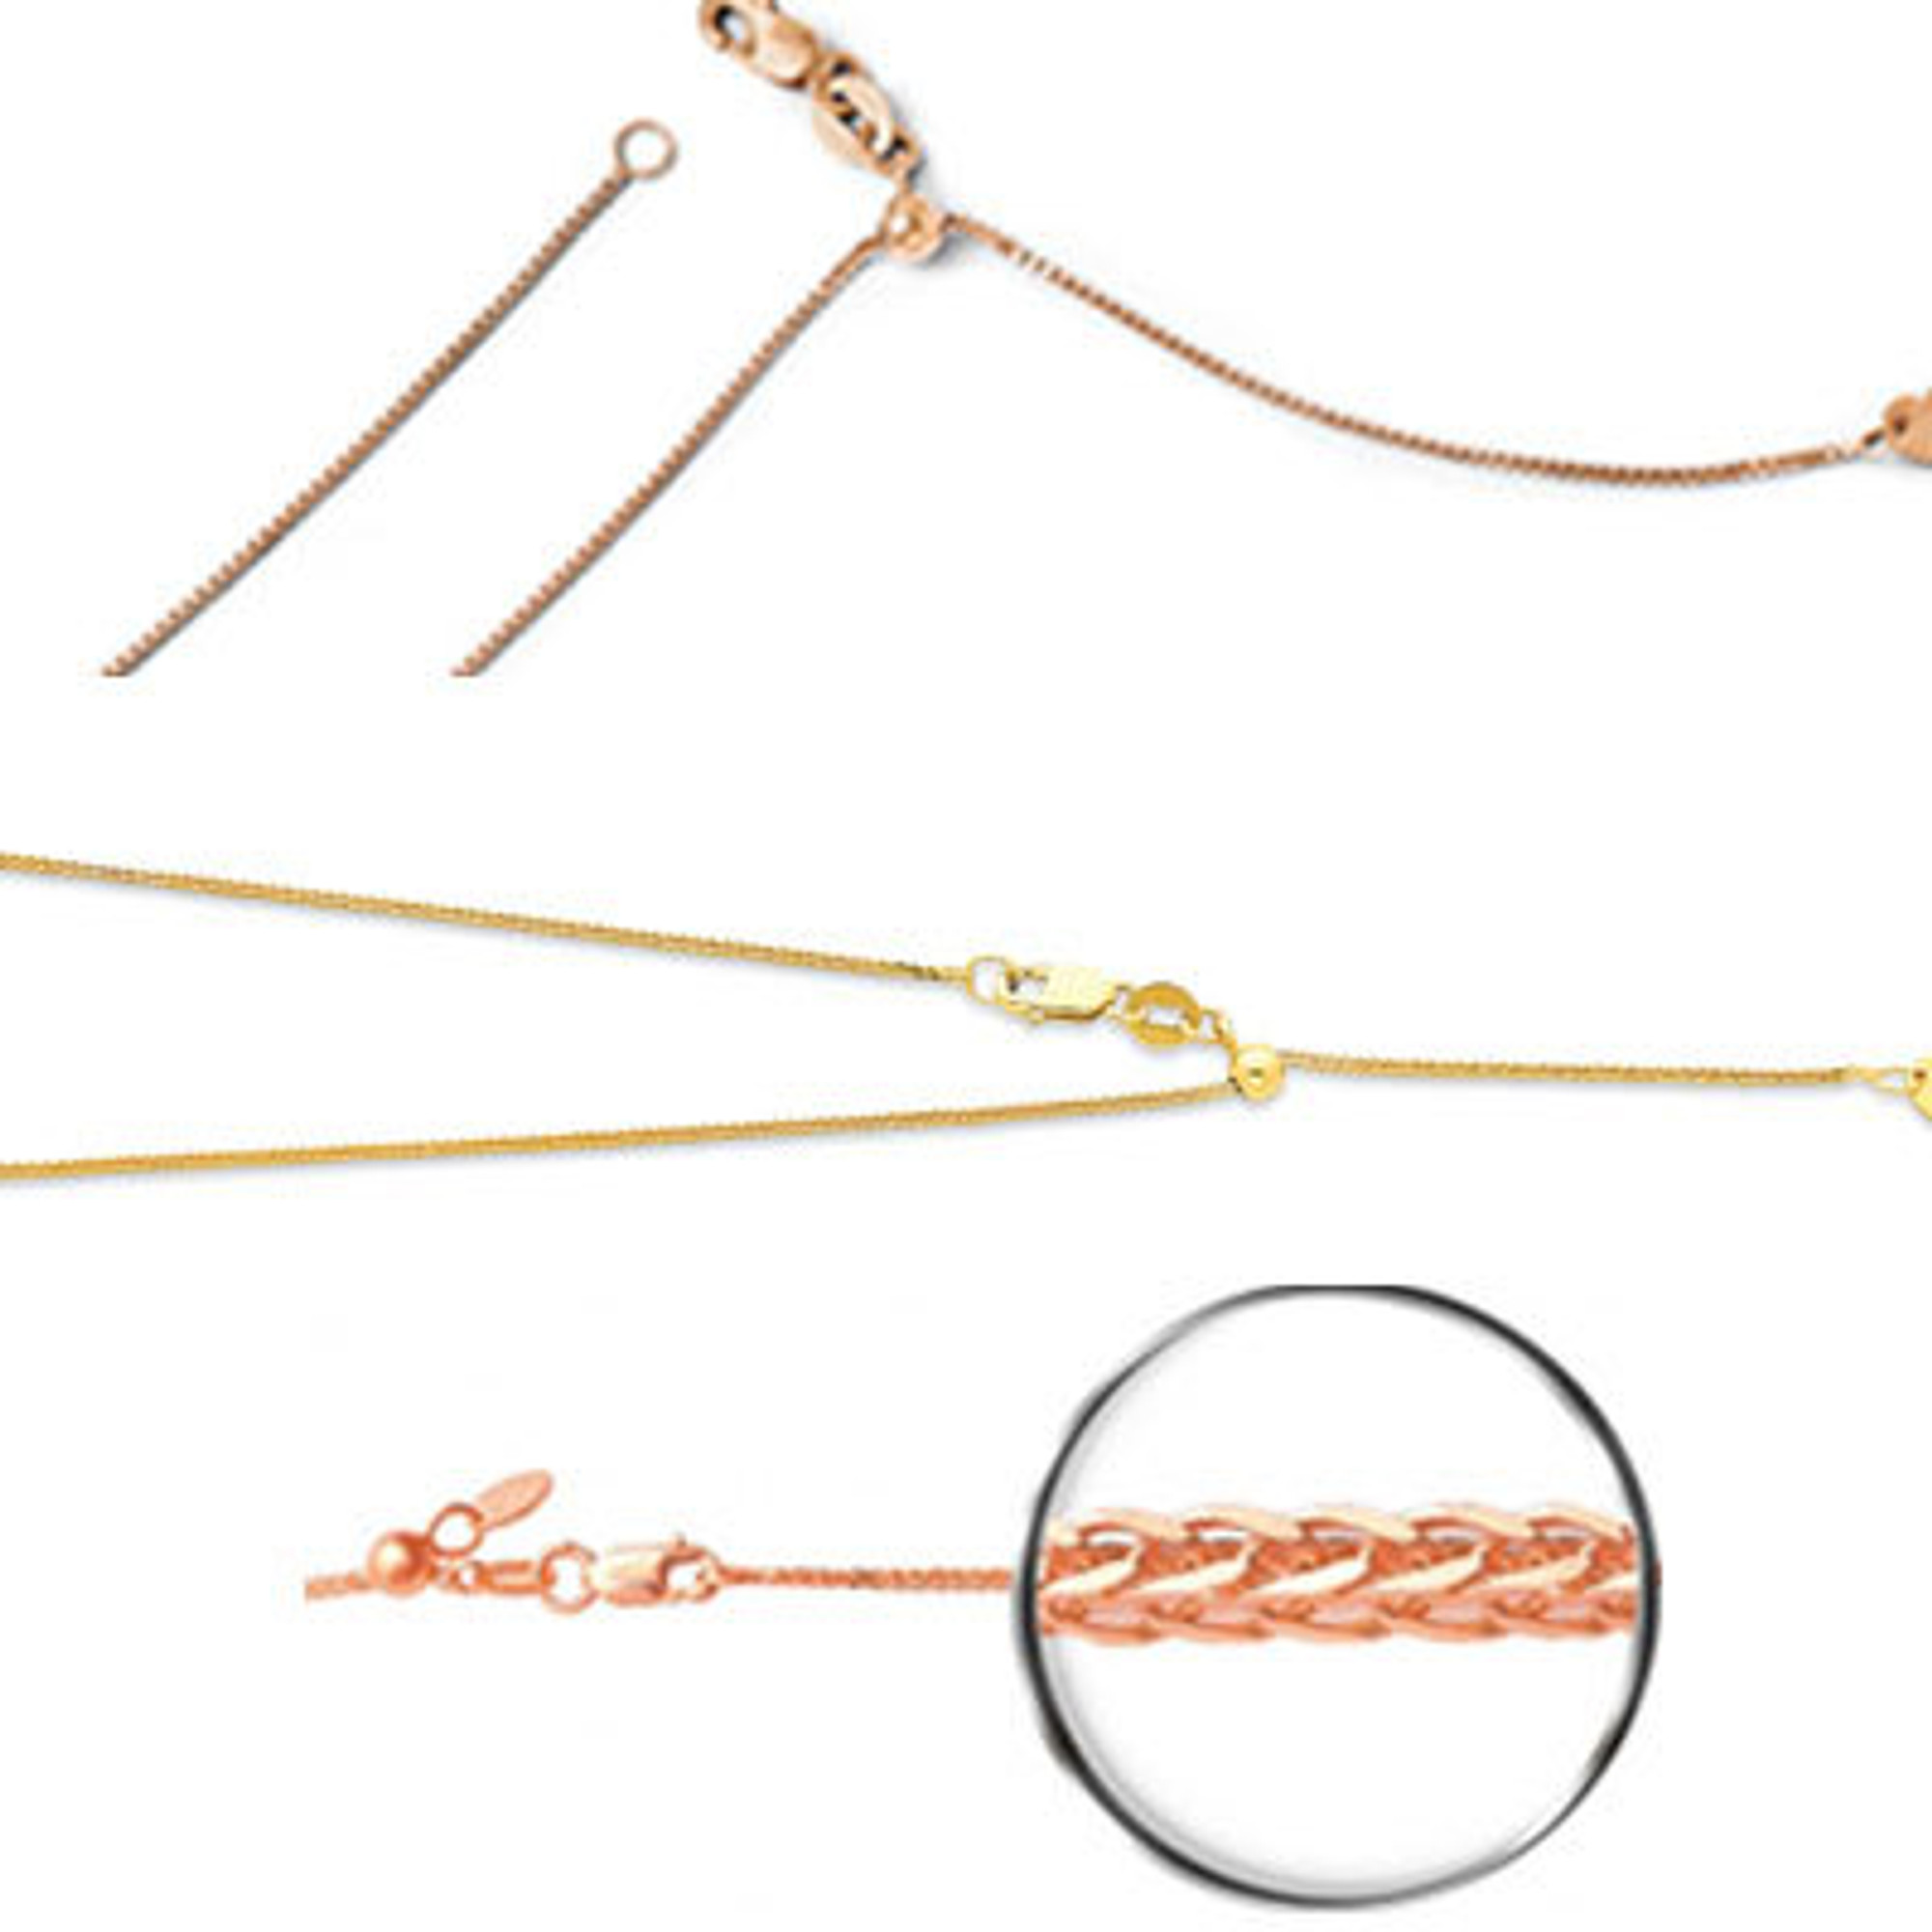 """Details about  /Italian 14k Rose Gold Rolo Chain Necklace Adjustable 16-20/"""" 0.9mm to 1.35mm"""